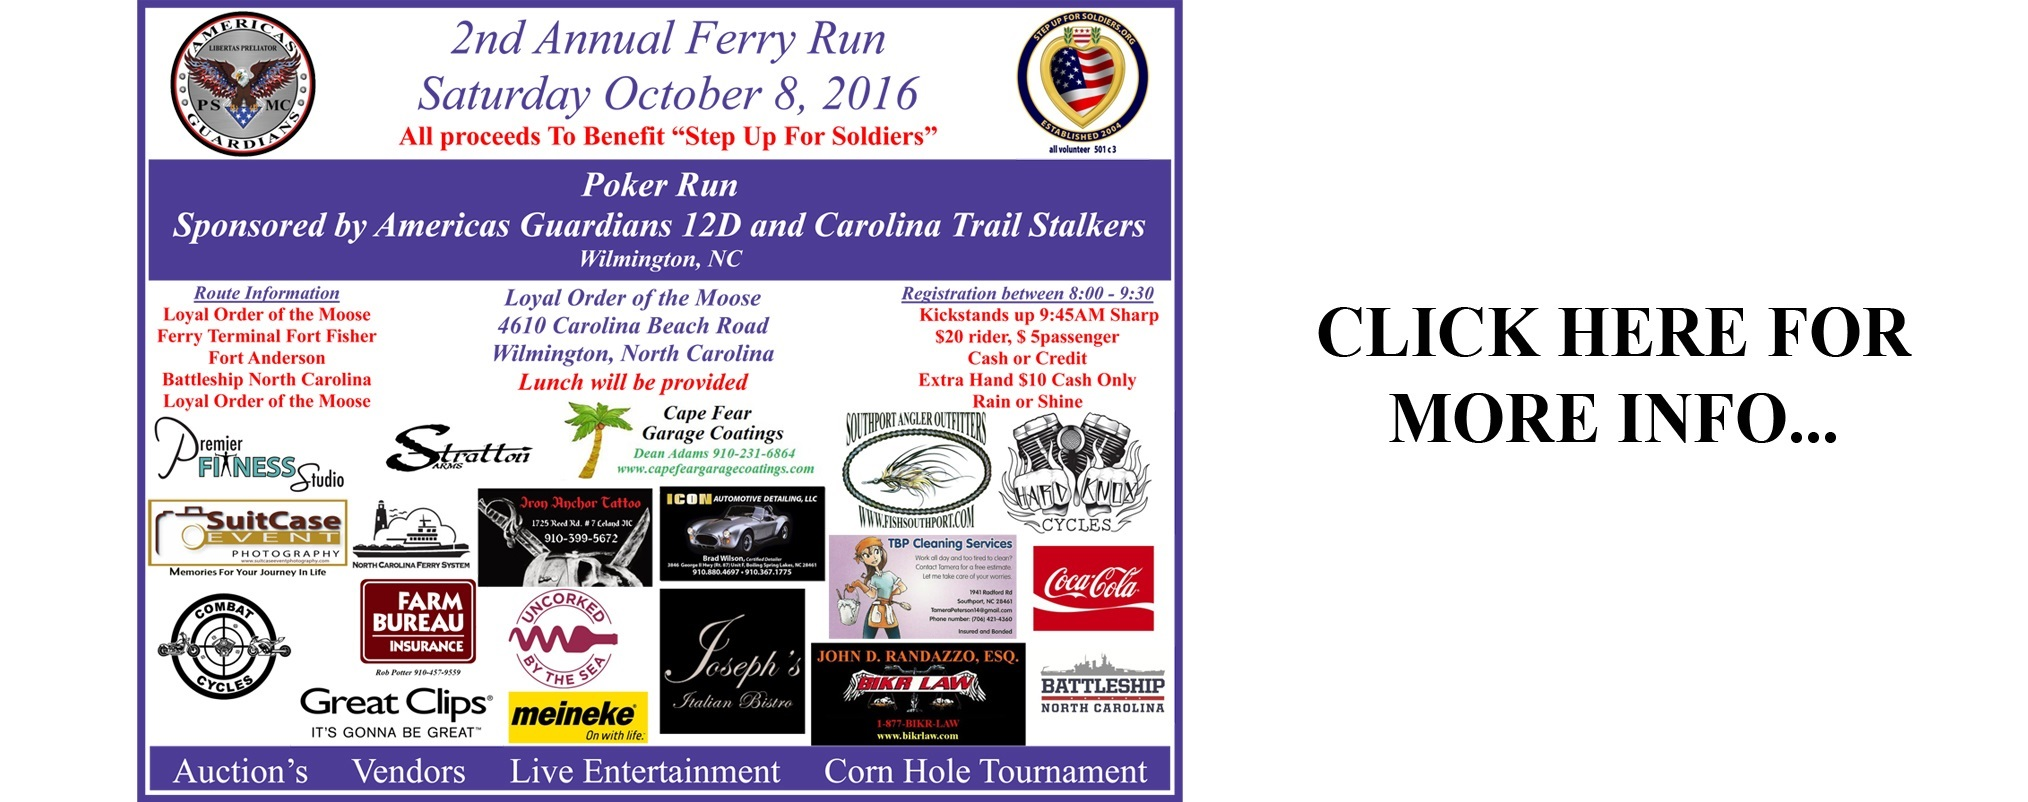 /Images/stepup/pdfs/2nd_Annual_Ferry_Run_AGMC_12D_Final.pdf